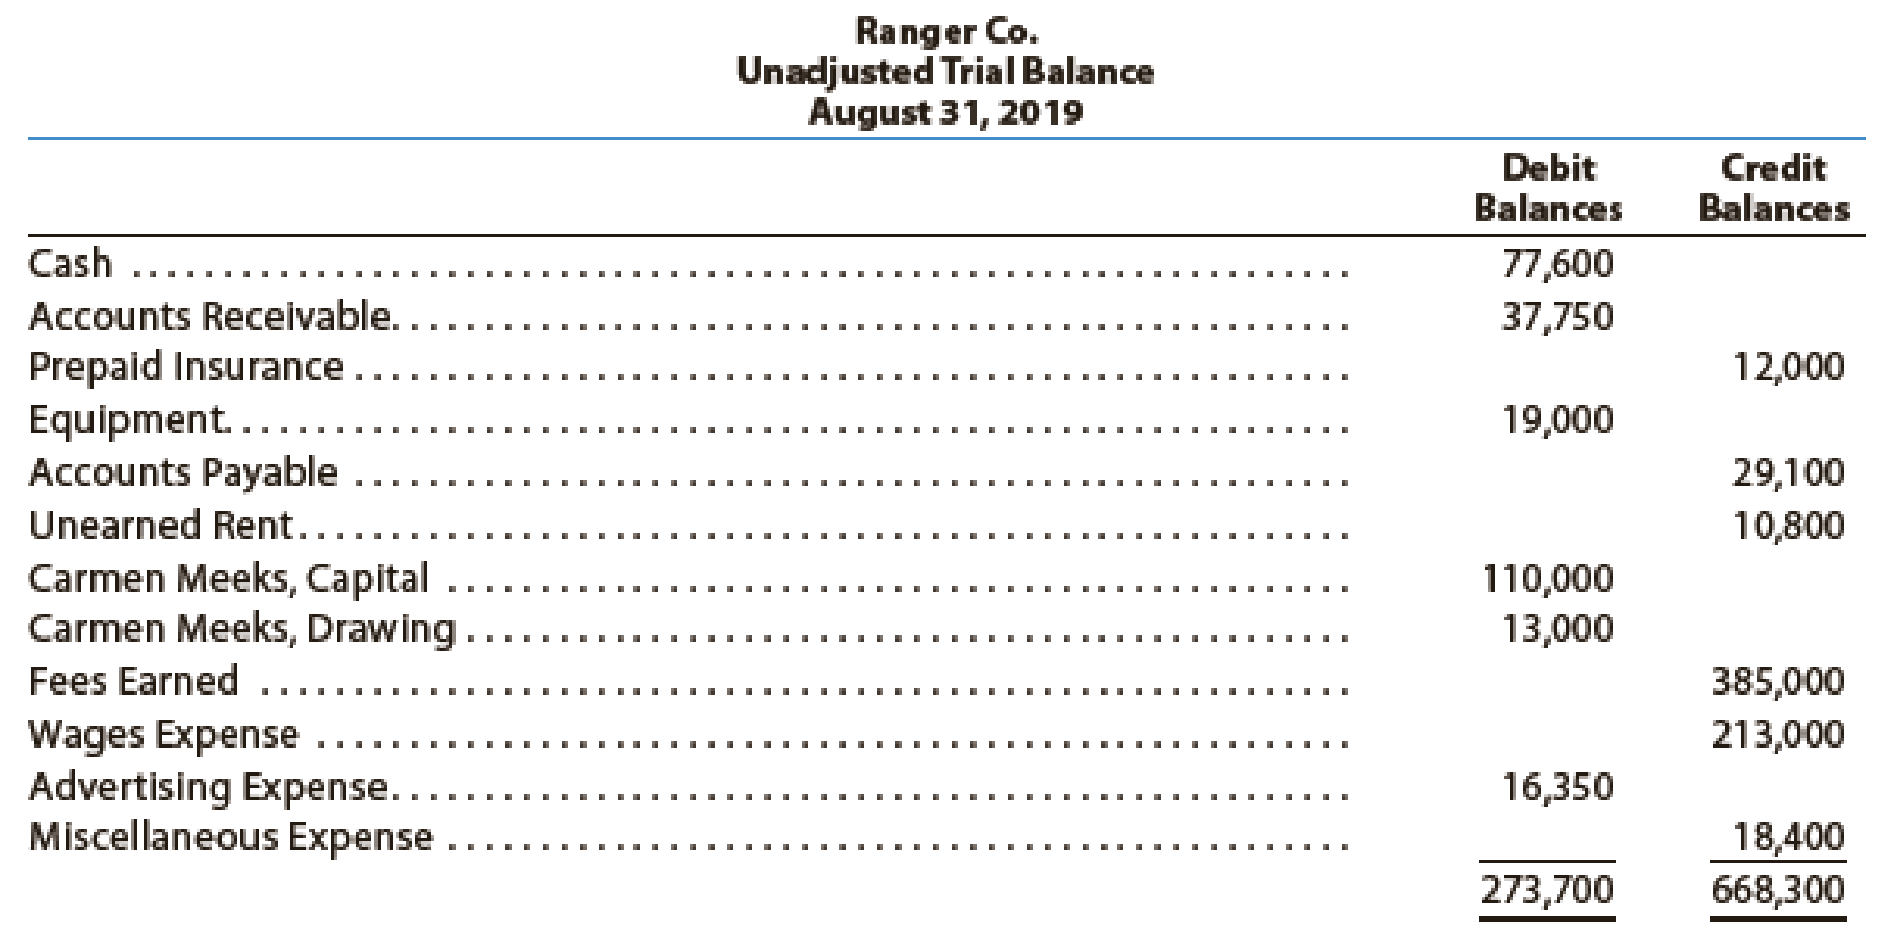 Chapter 2, Problem 18E, The following preliminary unadjusted trial balance of Ranger Co., a sports ticket agency, does not